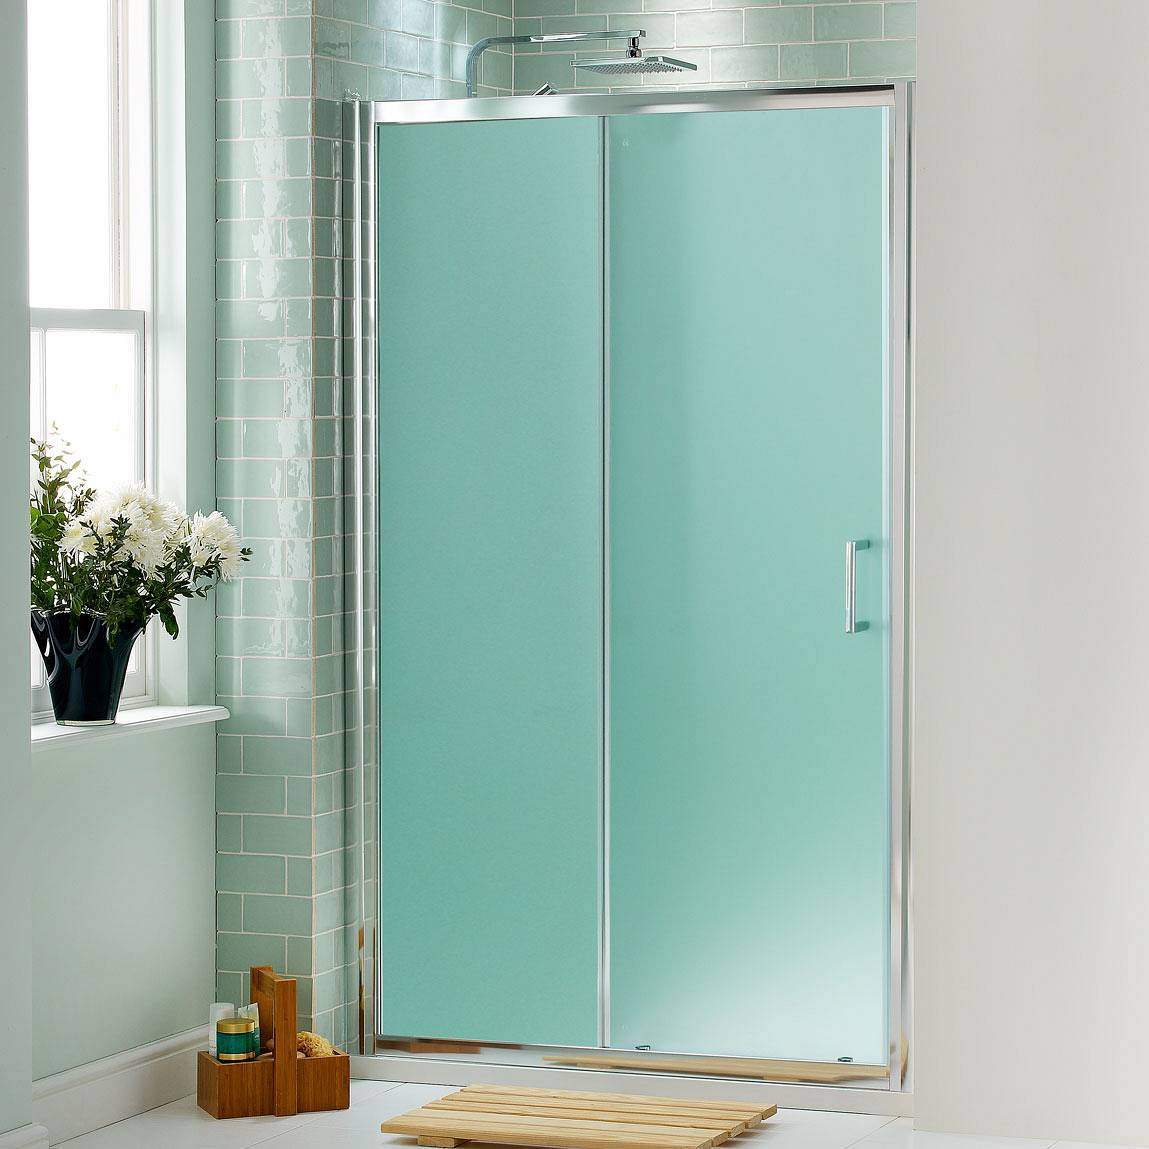 21 creative glass shower doors designs for bathrooms digsdigs Bathroom glass doors design